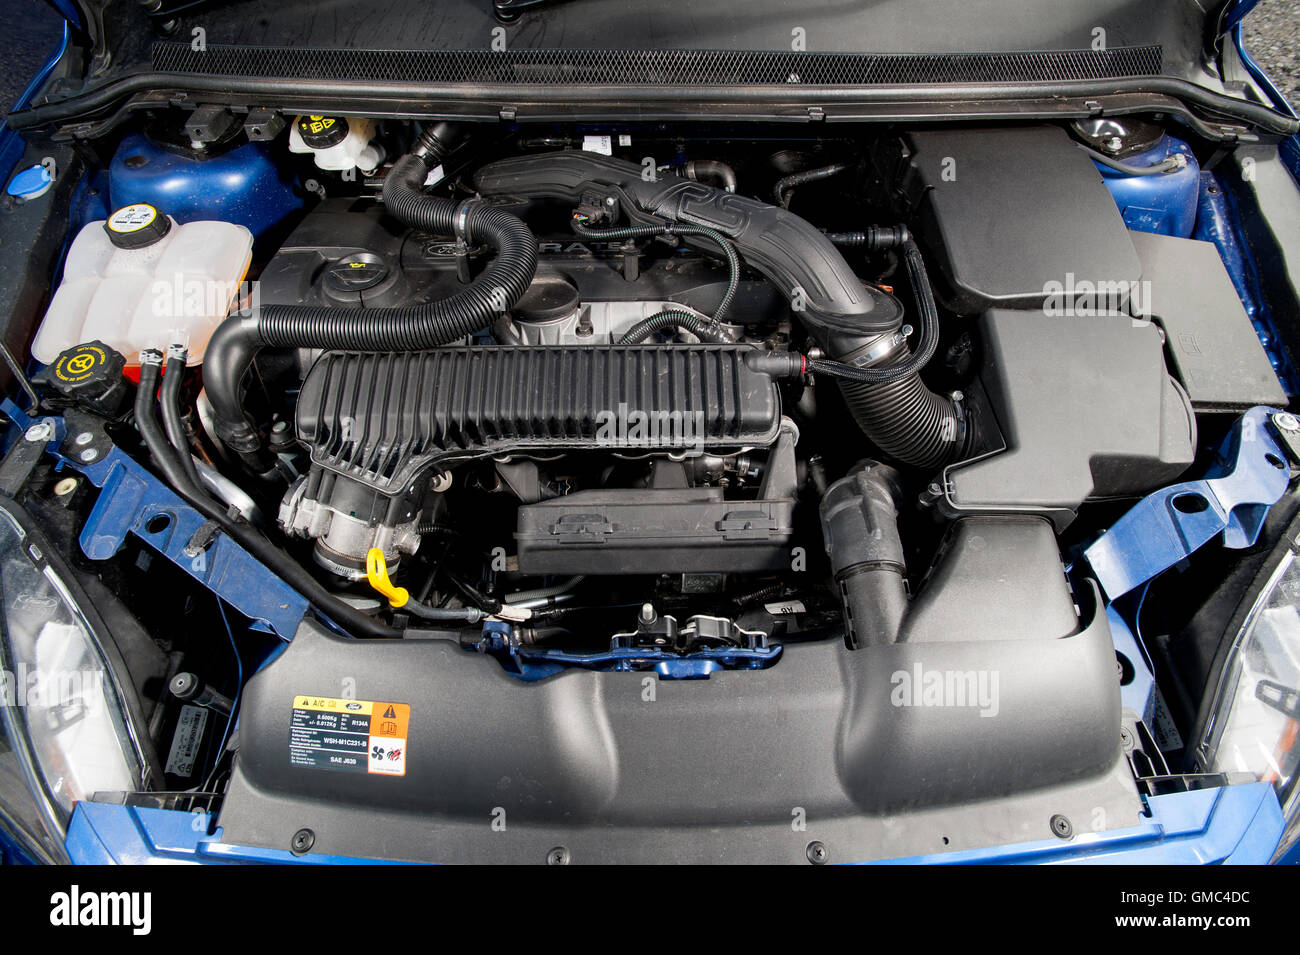 Ford Focus RS Mk2 engine bay, high performance hot hatch car Stock ...